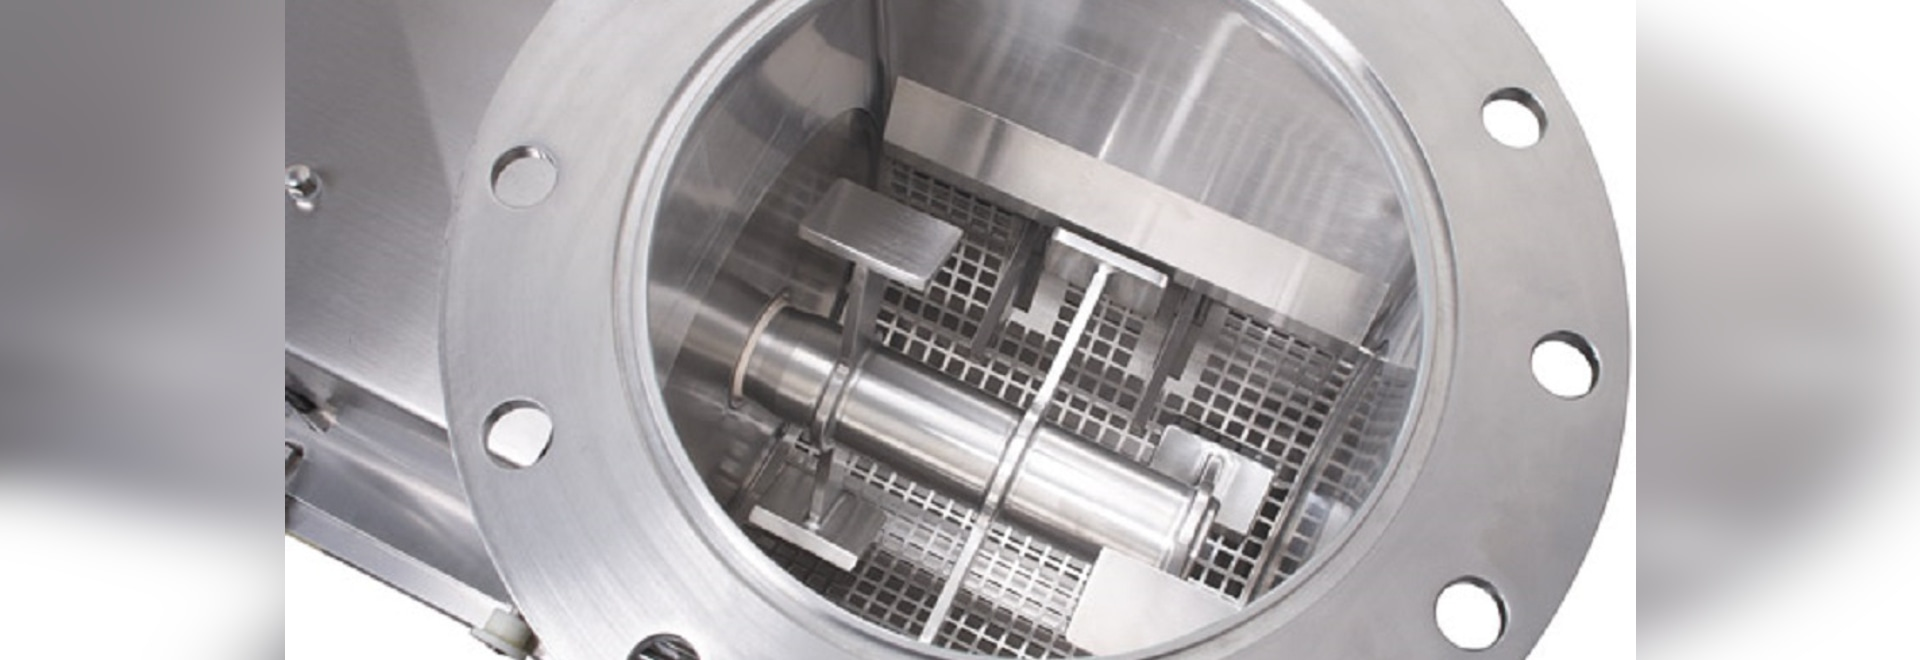 AZO Lump breaker complies with highest requirements to hygiene and cleaning